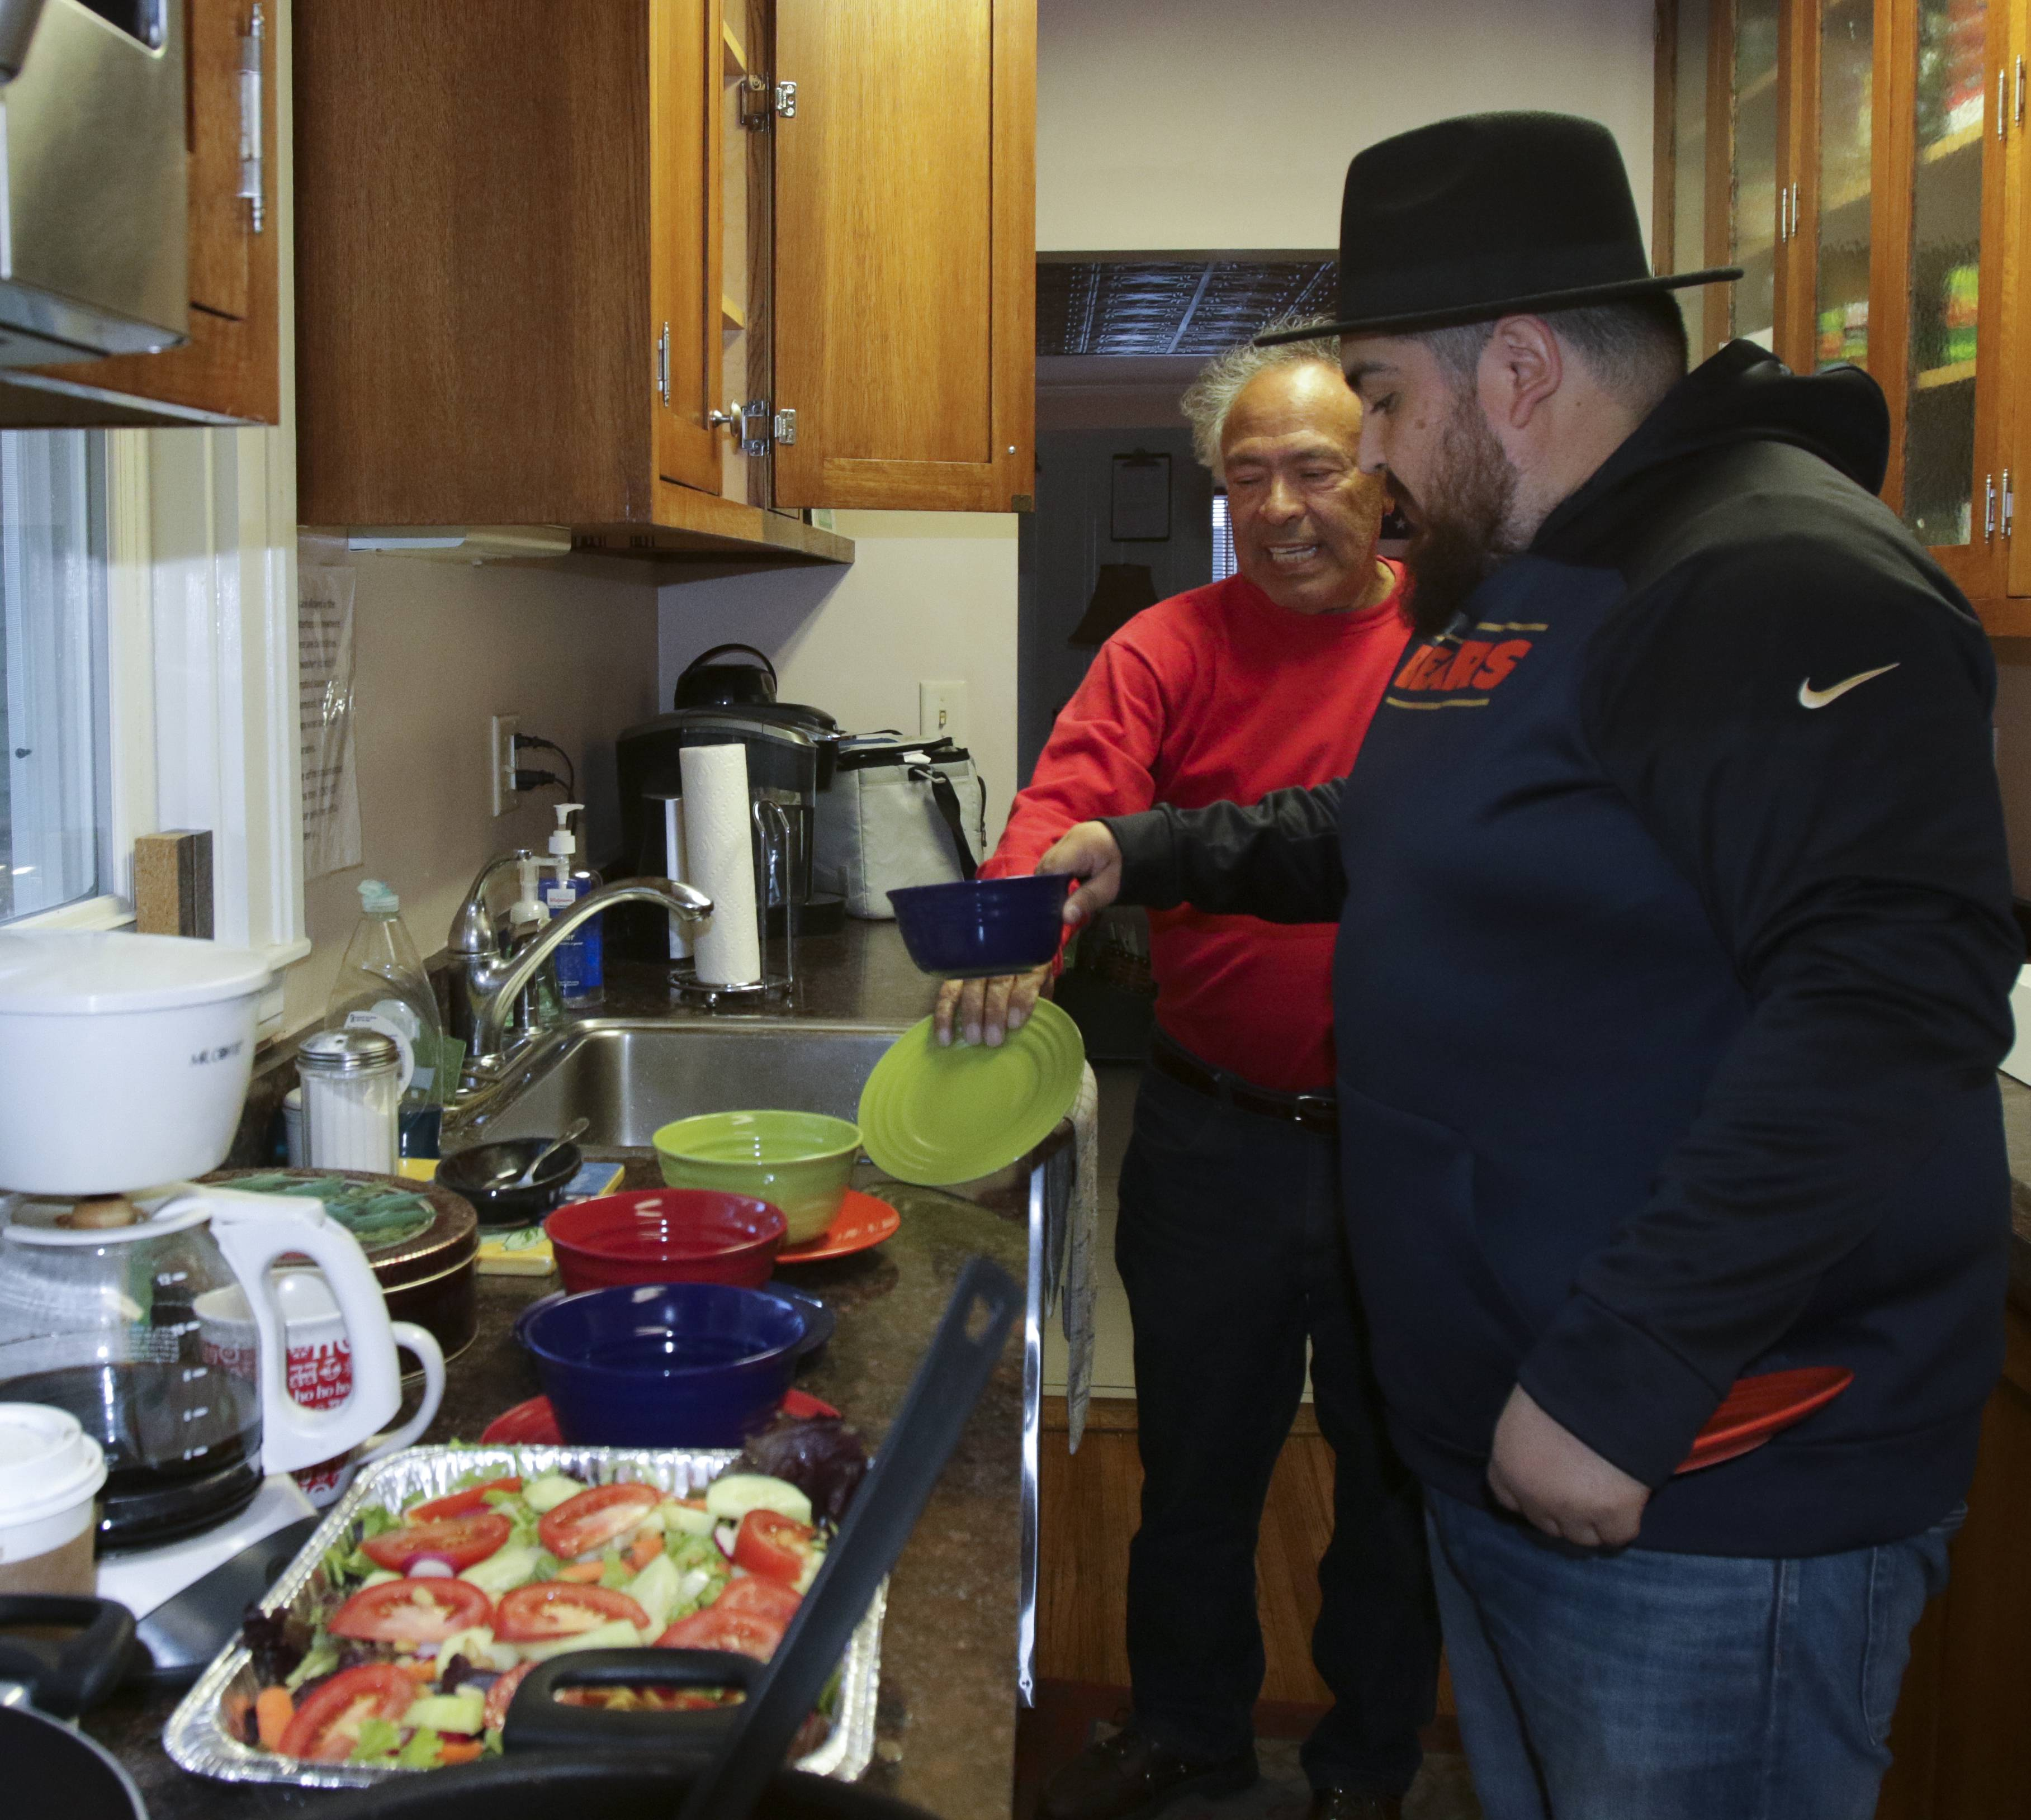 Manuel Lopez of Naperville, left, the father of a Marines veteran, left, helps house manager Alex Garcia in the kitchen of the Midwest Shelter for Homeless Veterans in Wheaton. Lopez promotes veterans suicide prevention and mental health awareness as a way to give back and thank those who served, like his son, Matthew.